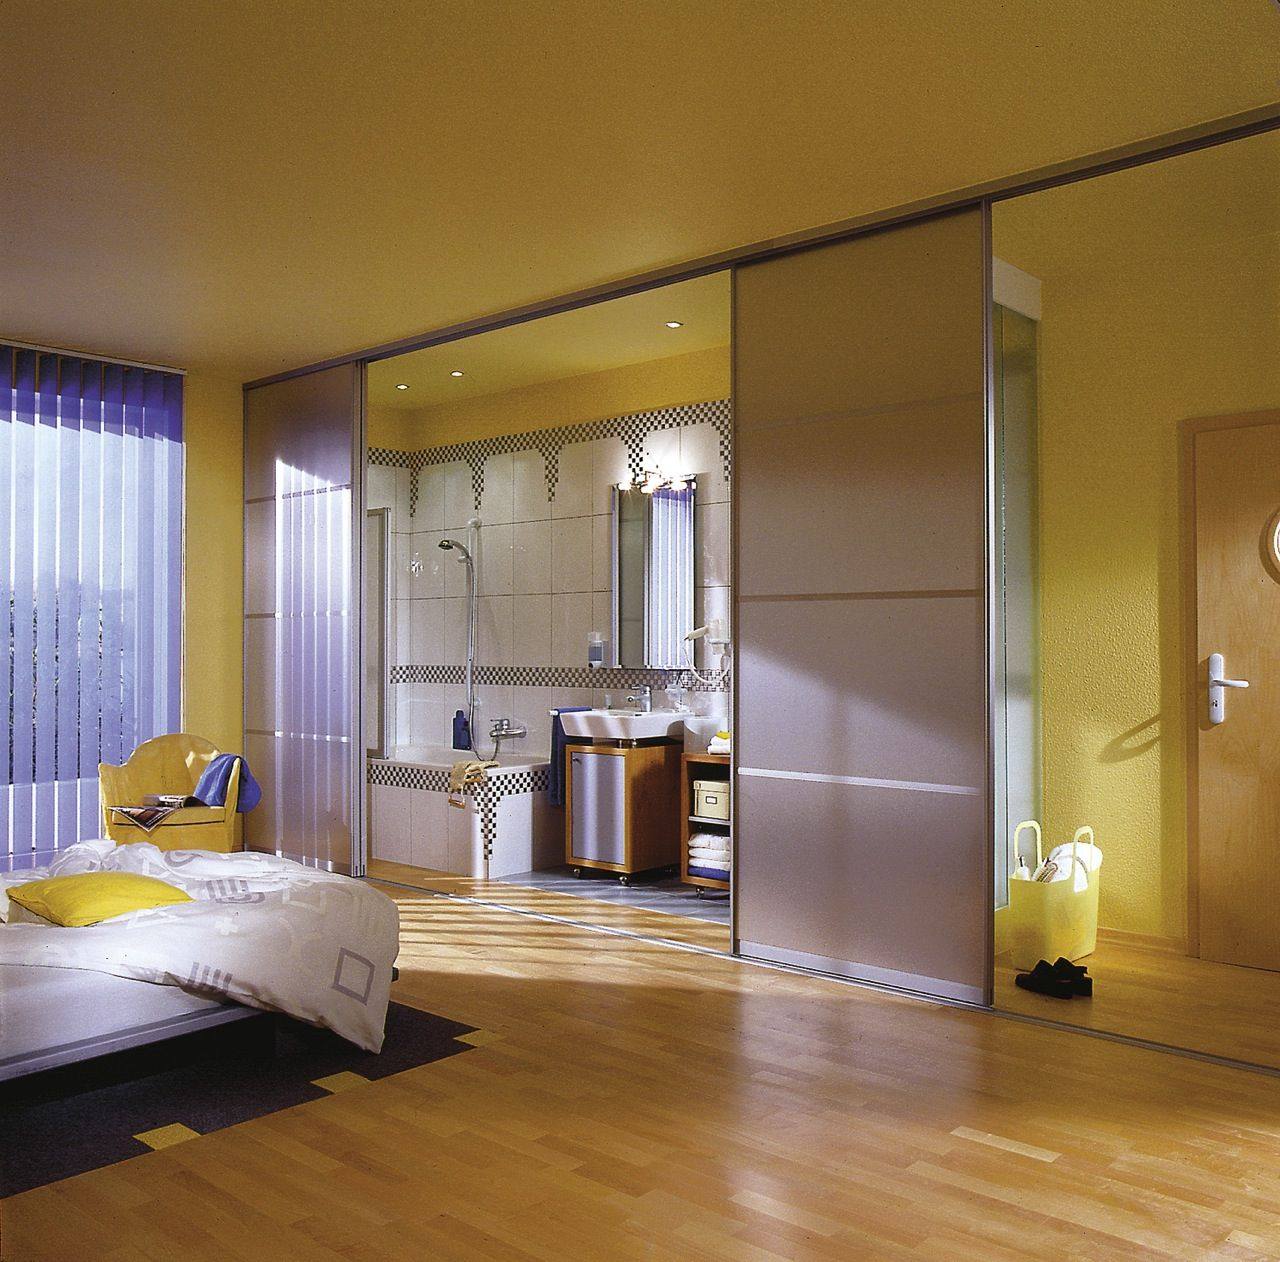 BathroomDesign Furniture Outstanding Modern Open Plan Bedroom